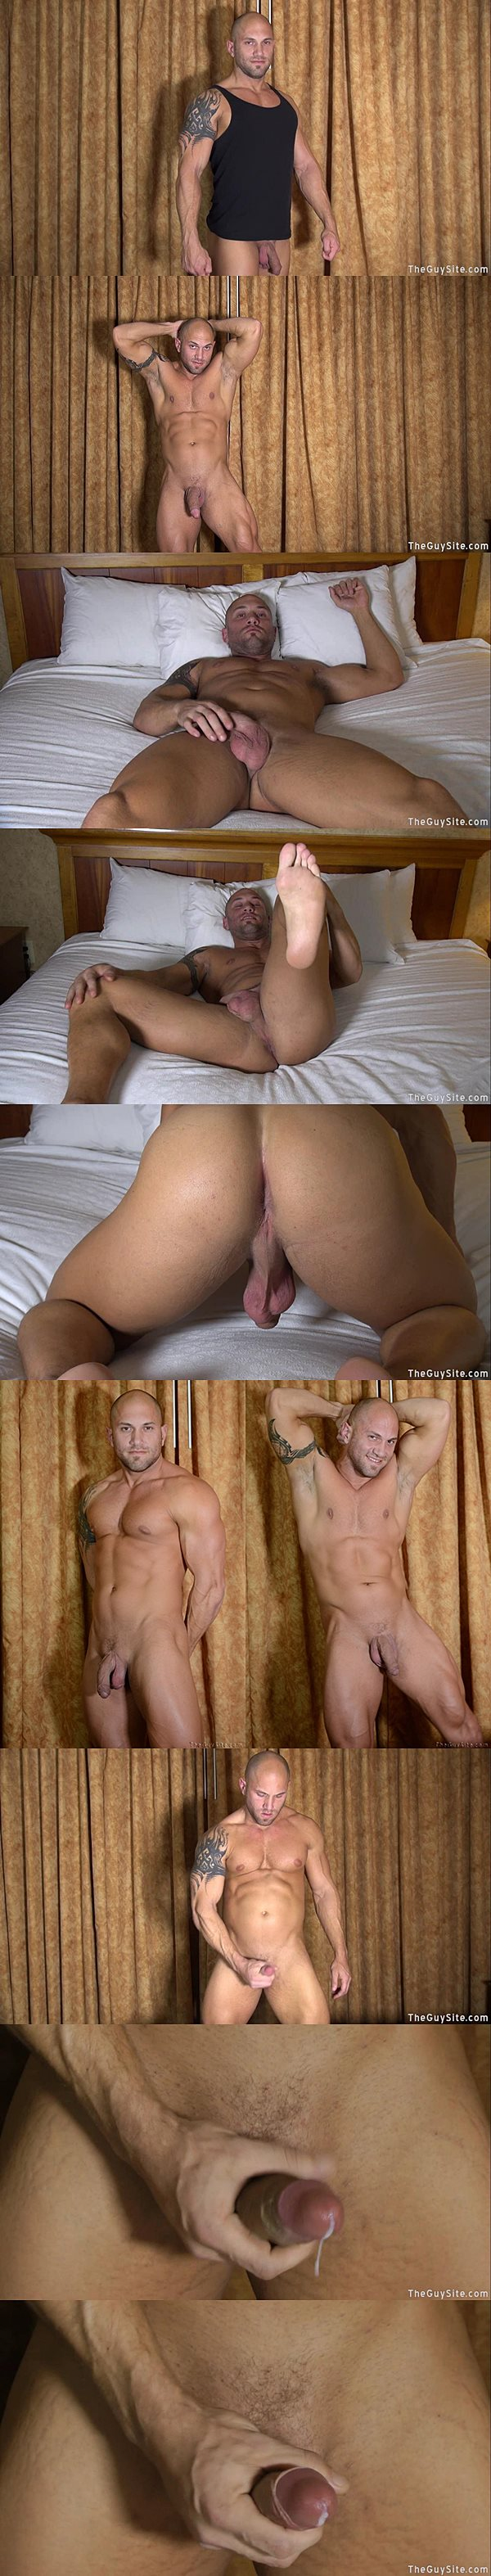 Hot skinhead bodybuilder Gannicus shows off his hard muscles before he dumps his milky load at Theguysite